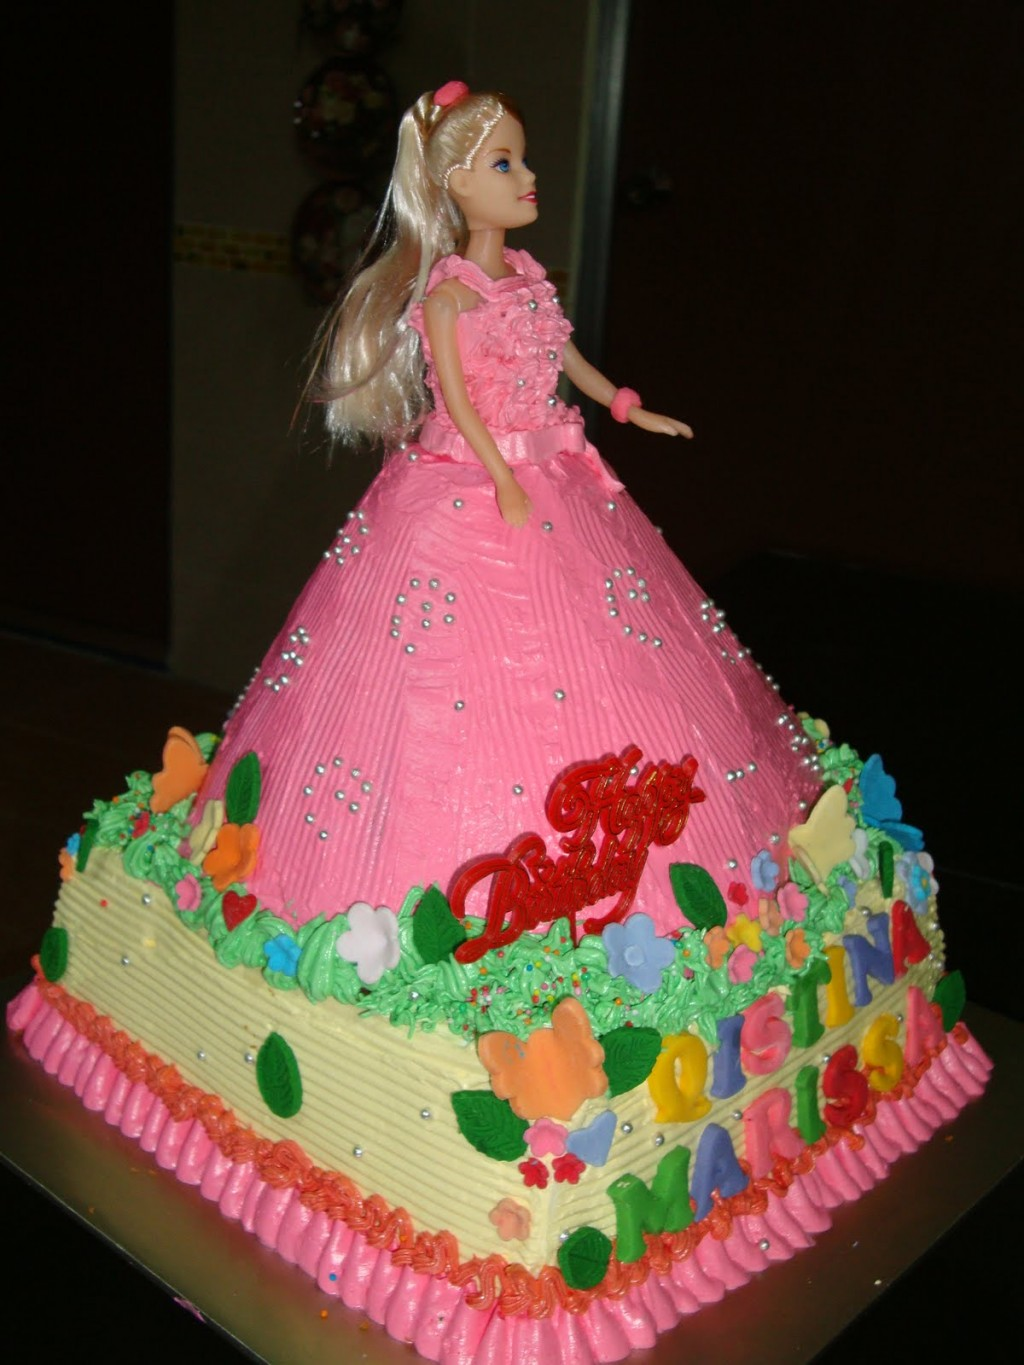 Barbie Cake Doll Cake Decor - Cake Ideas by Prayface.net